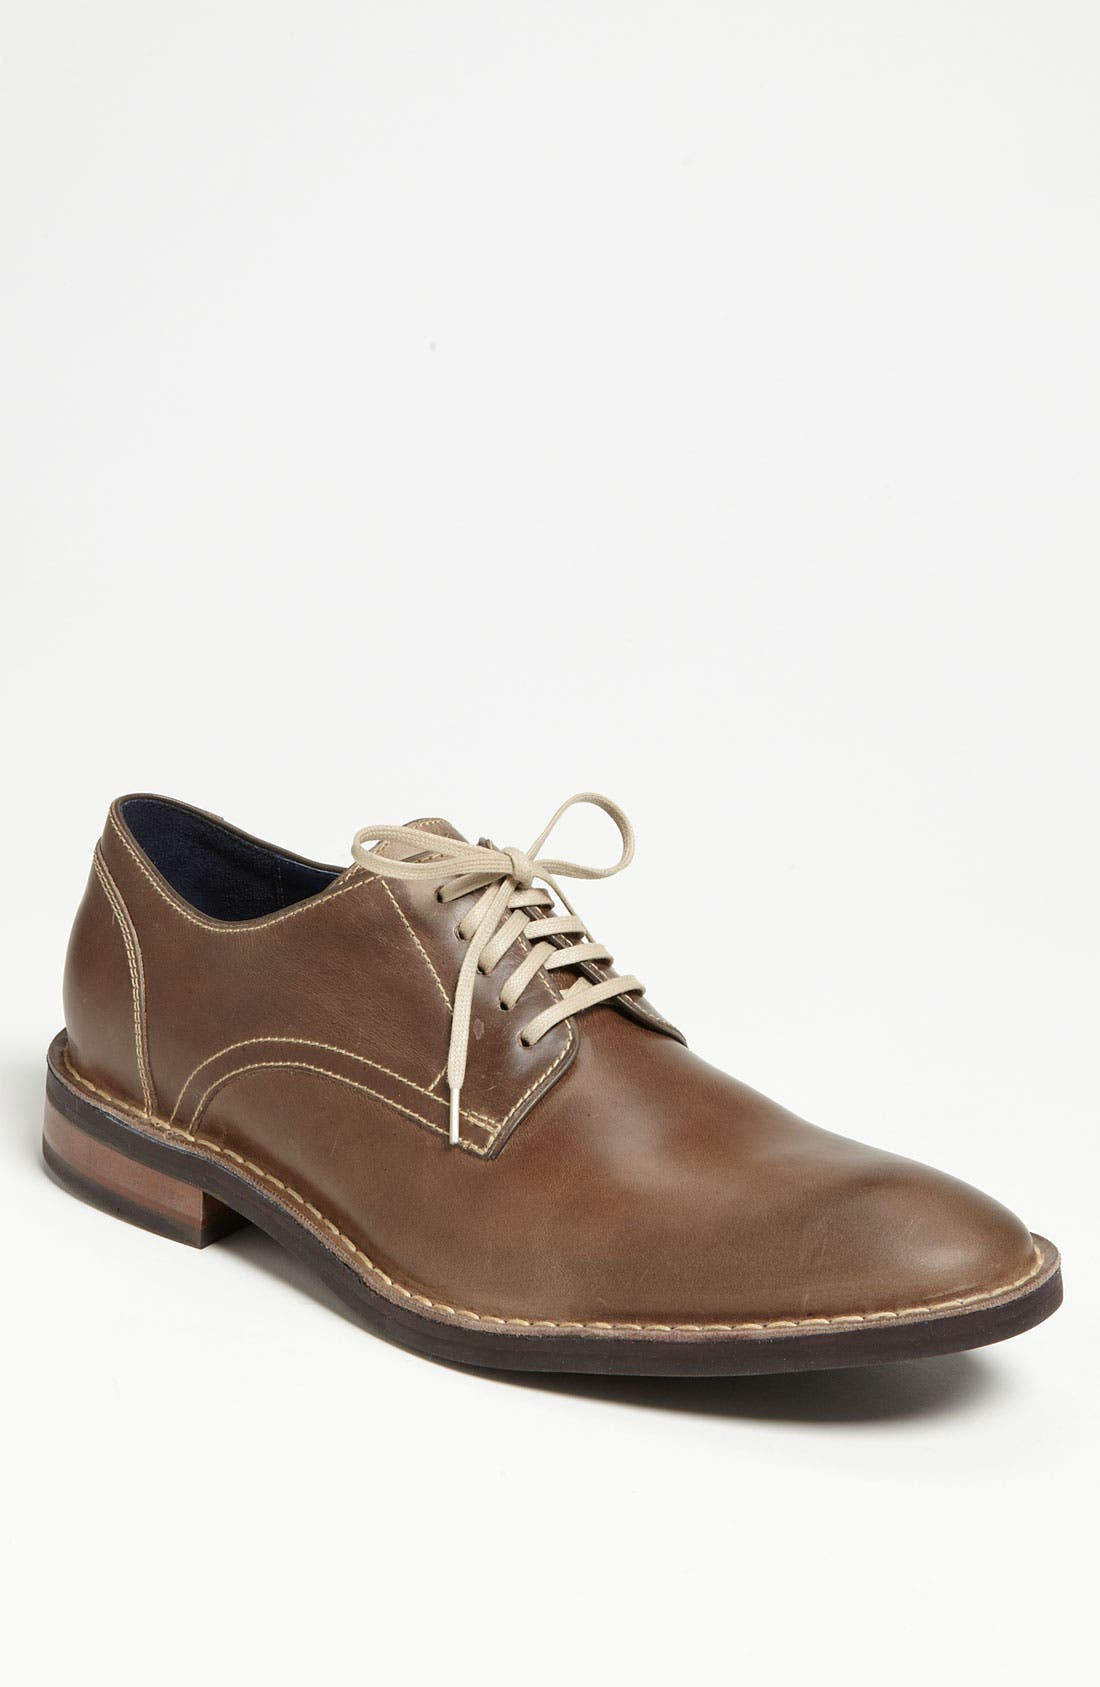 Main Image - Cole Haan 'Air Stratton' Oxford   (Men)